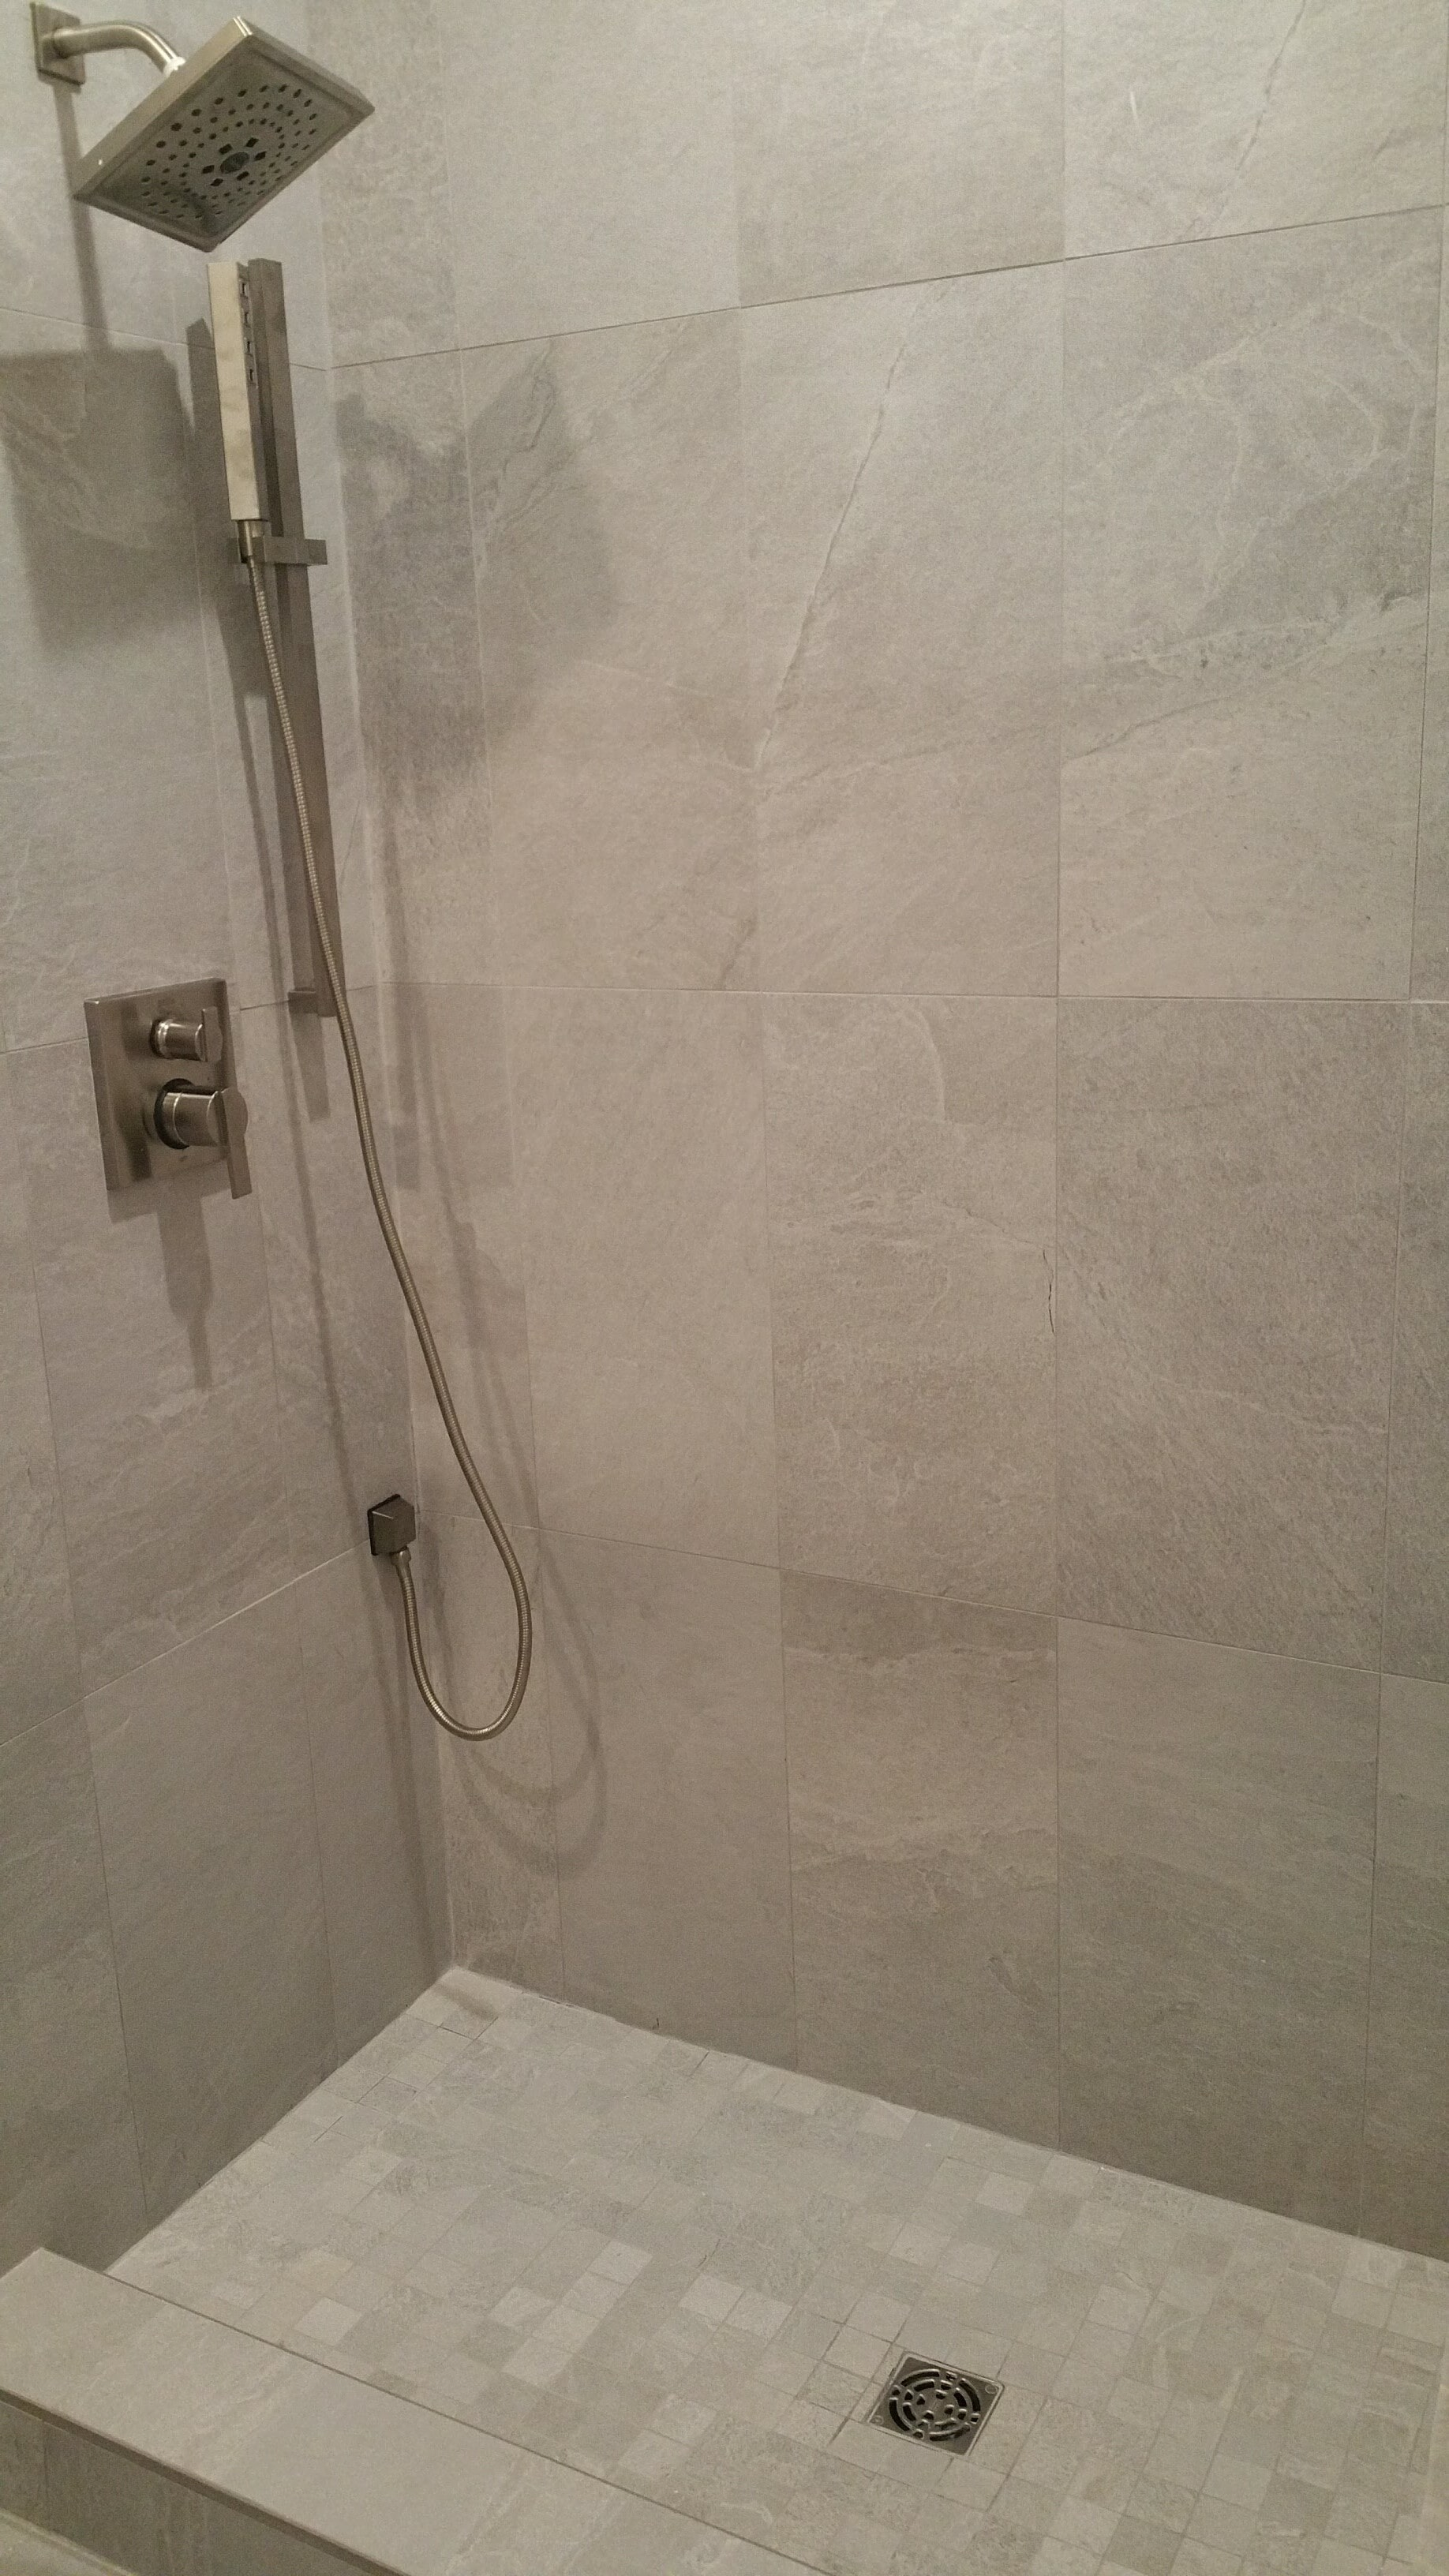 Shower tile installation and remodel in Tampa FL